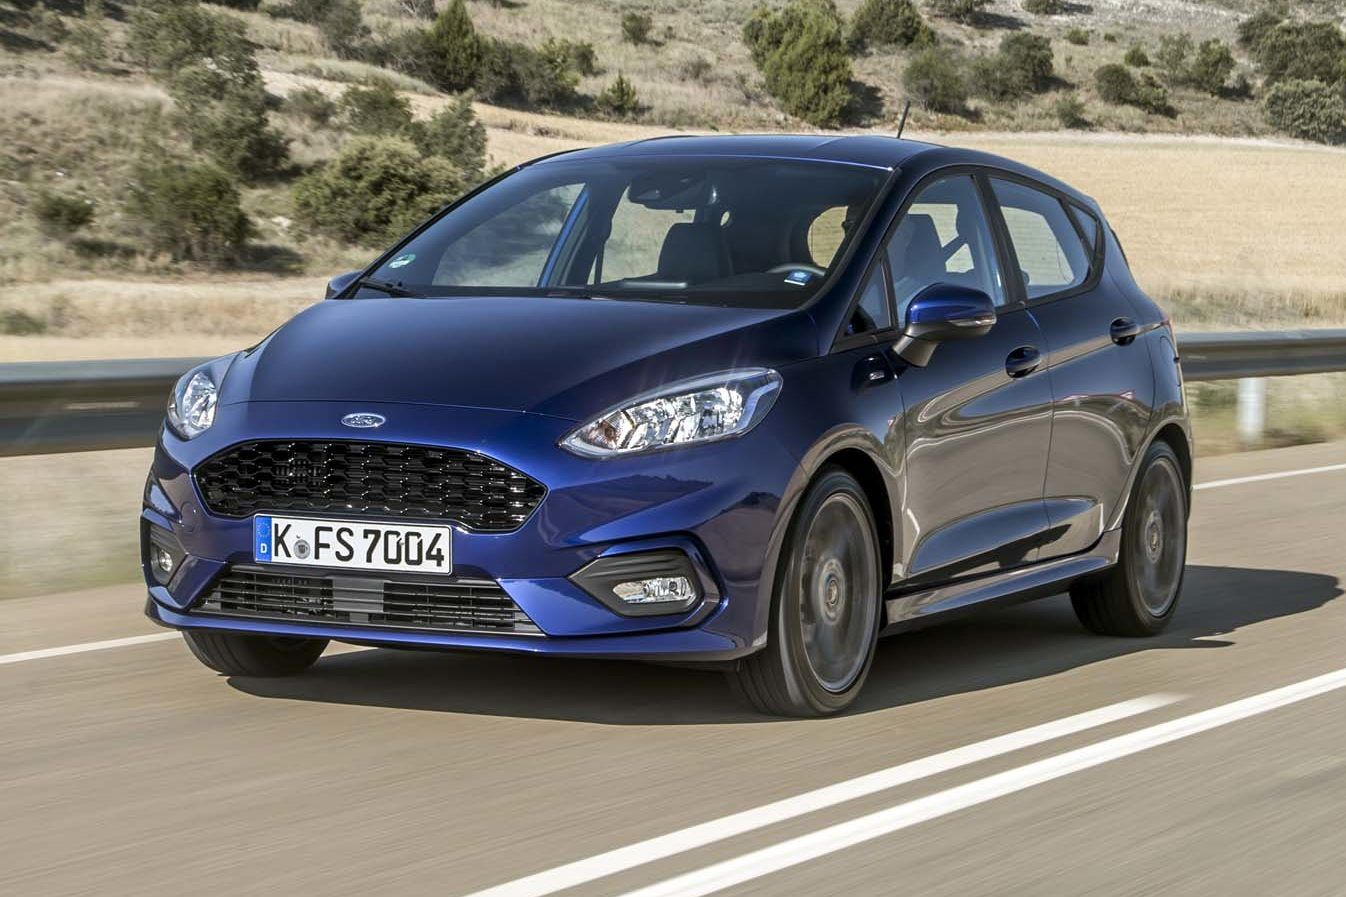 2018 Ford Fiesta European Spec Review Solid Improvements Tantalize Us Http Www Motortrend Com Cars Ford Fiesta 2018 2018 Ford Fiesta Car Ford Ford Mustang